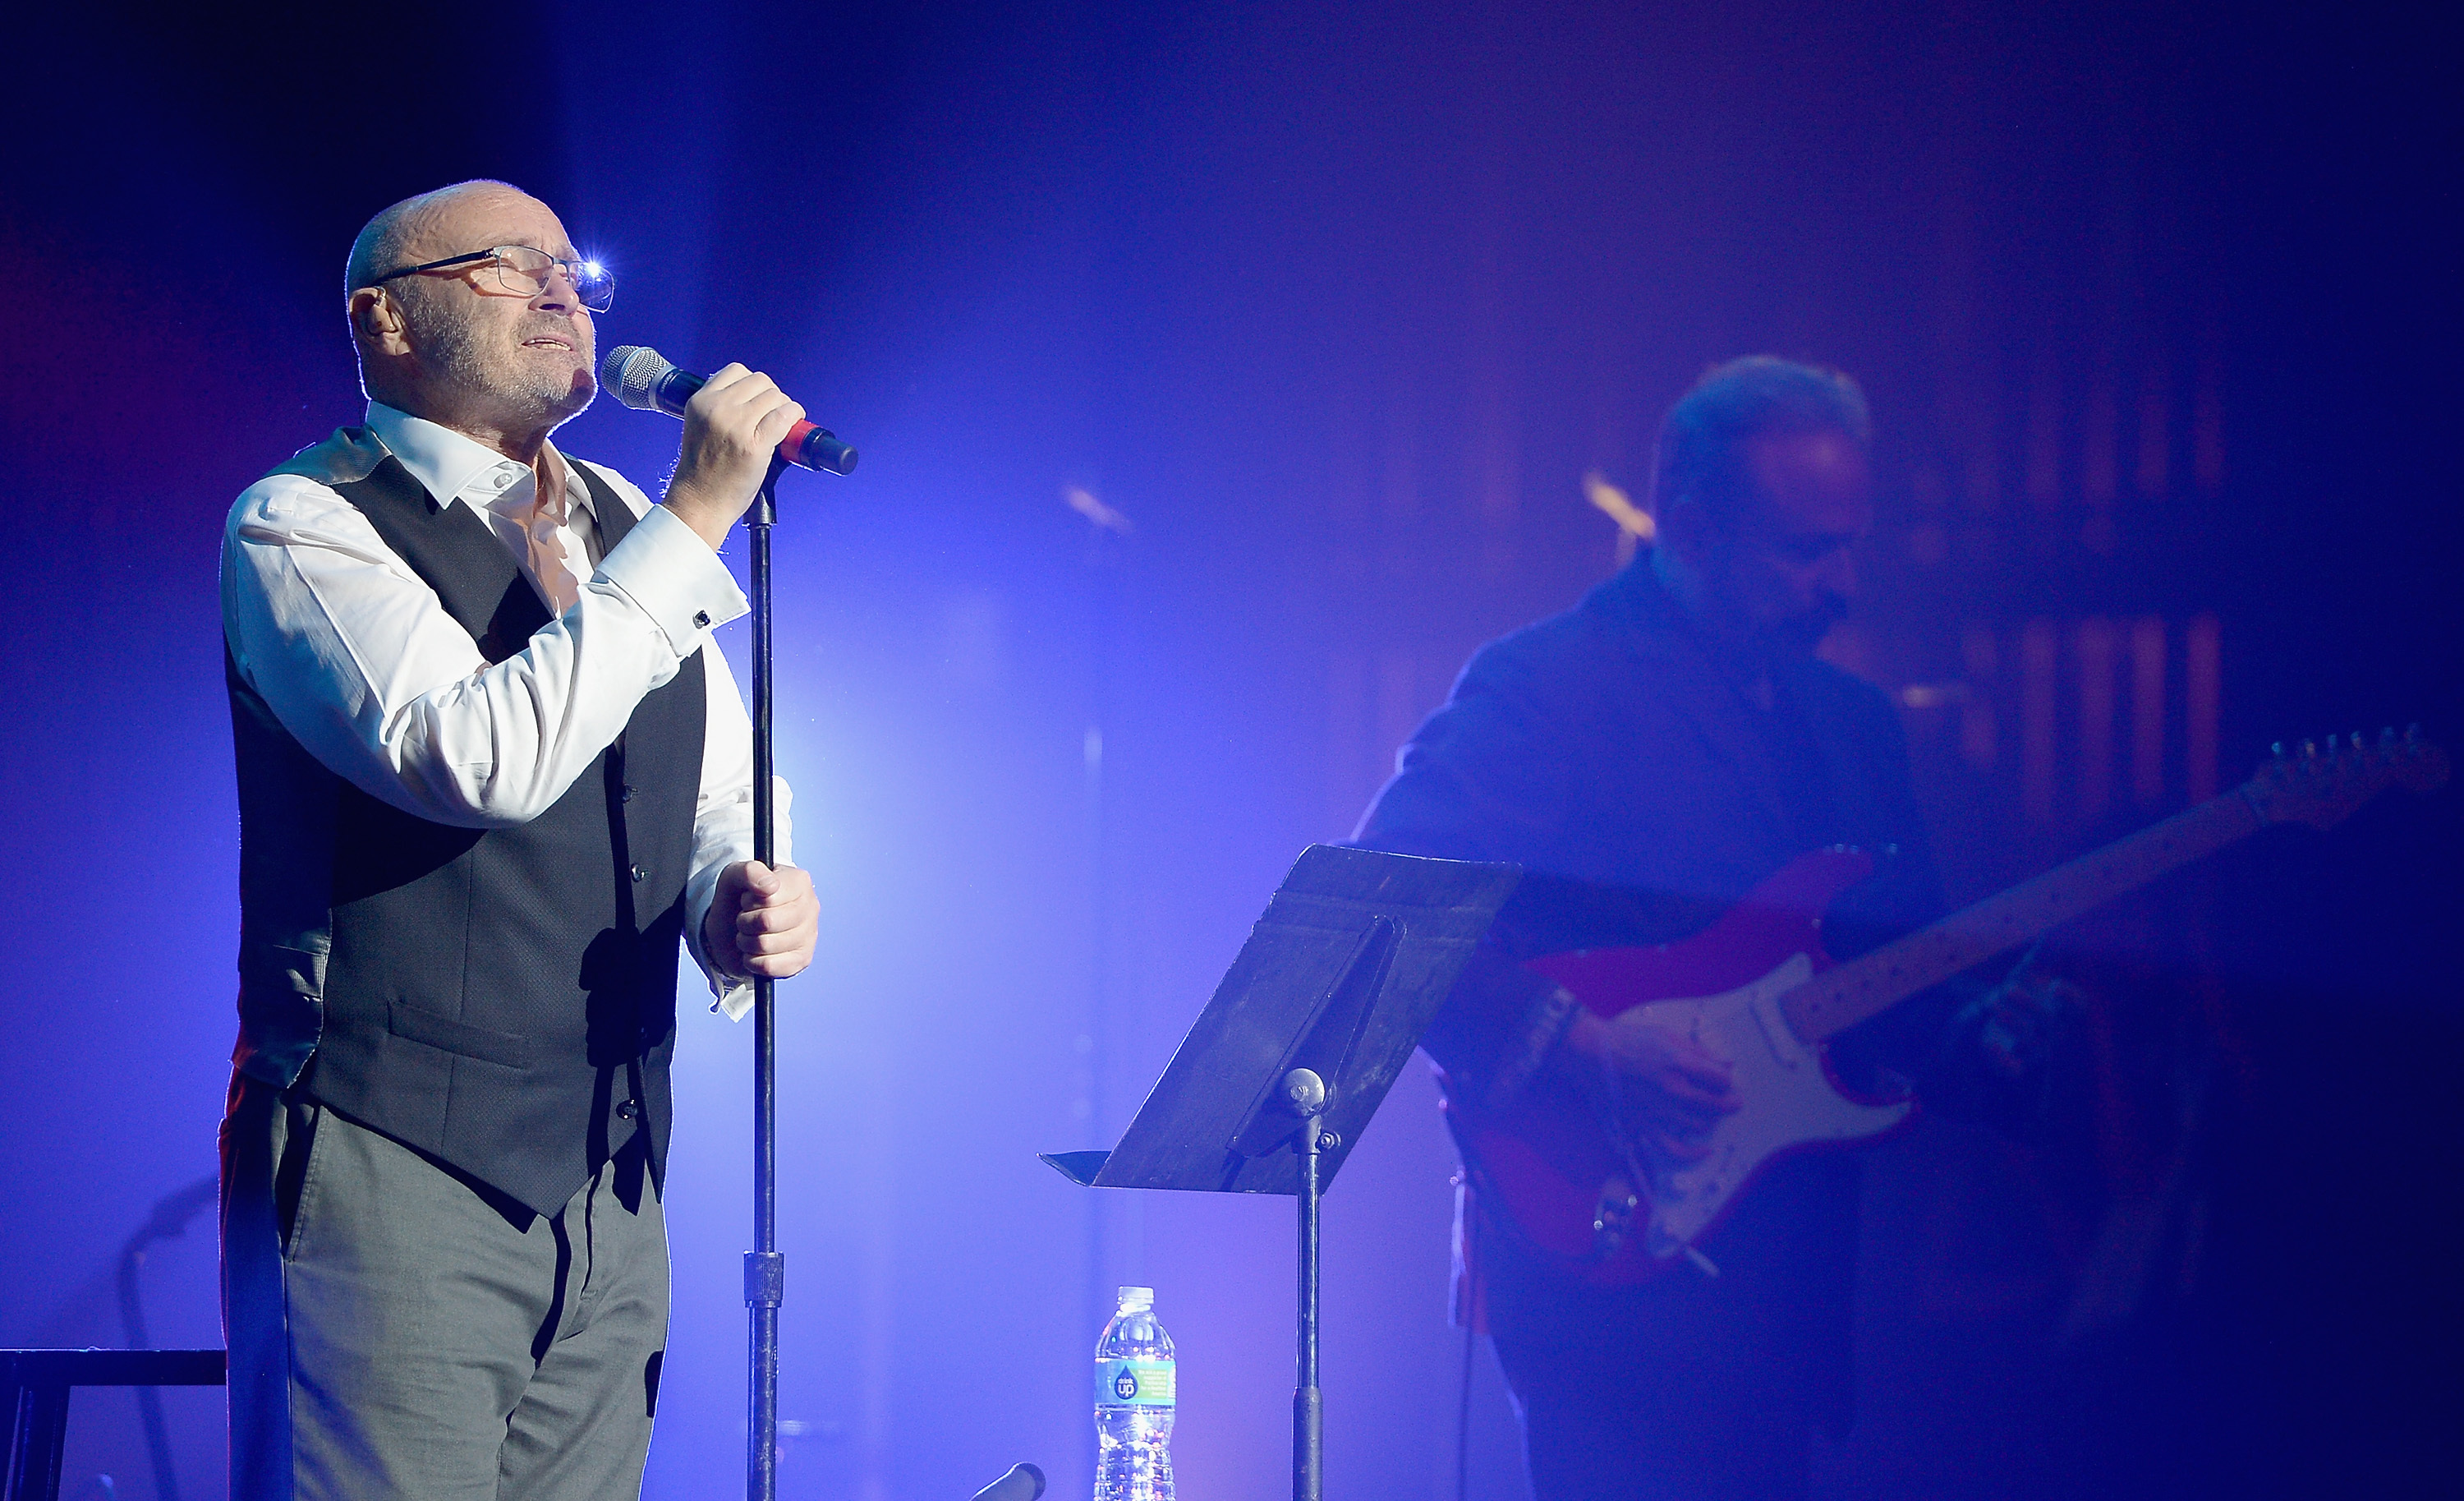 Phil Collins on stage (Gustavo Caballero/Getty Images)